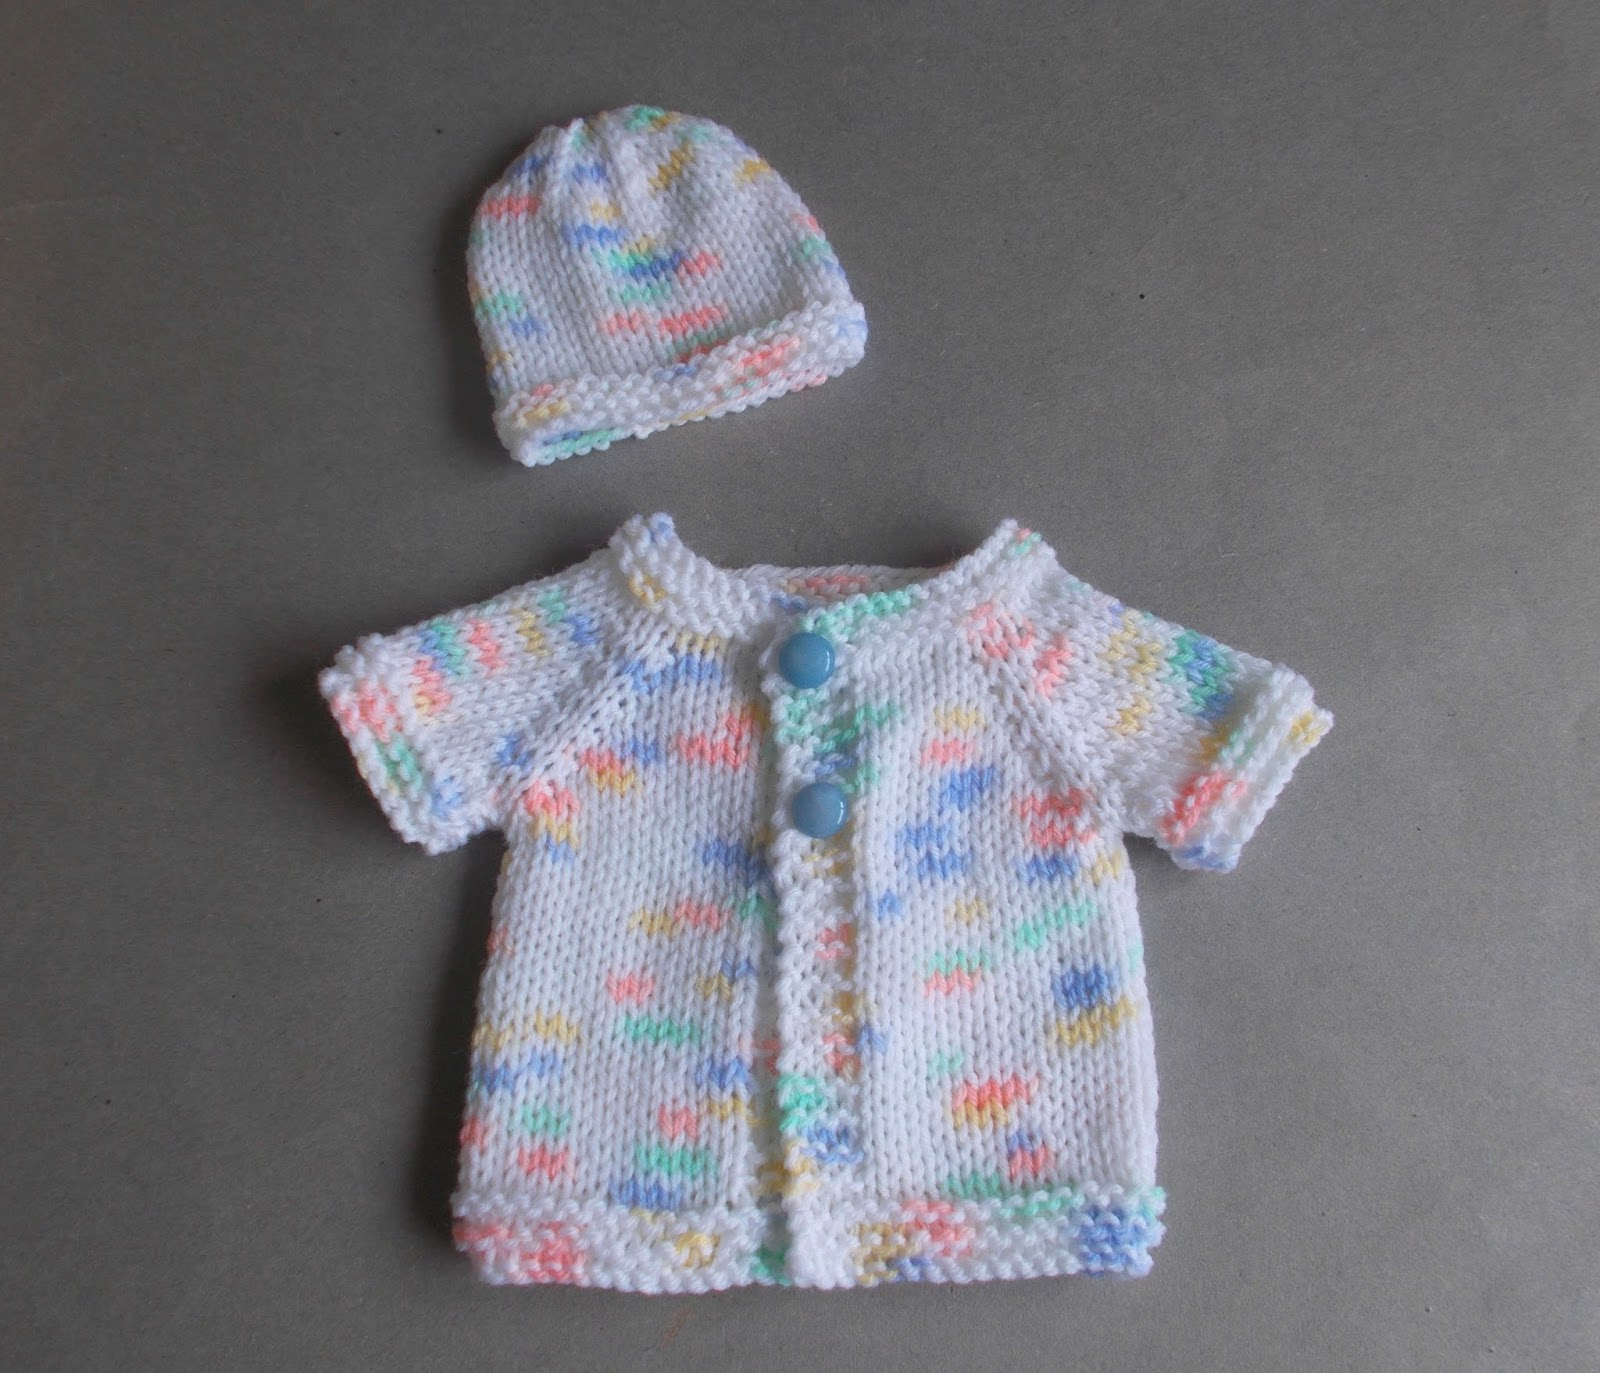 Knitting For Charity Premature Babies : Marianna s lazy daisy days topaz premature baby cardi